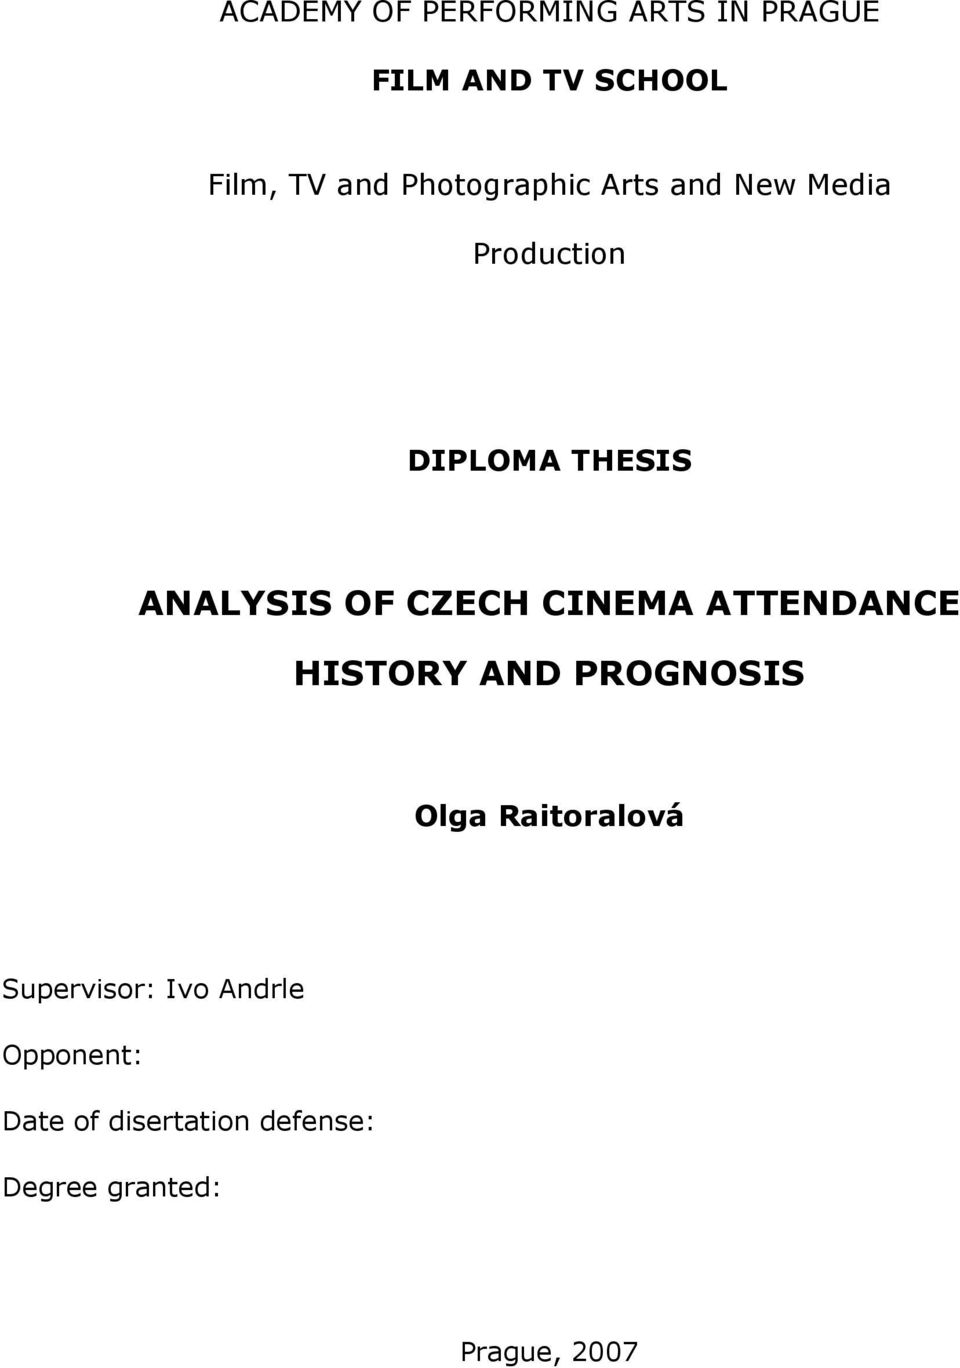 CZECH CINEMA ATTENDANCE HISTORY AND PROGNOSIS Olga Raitoralová